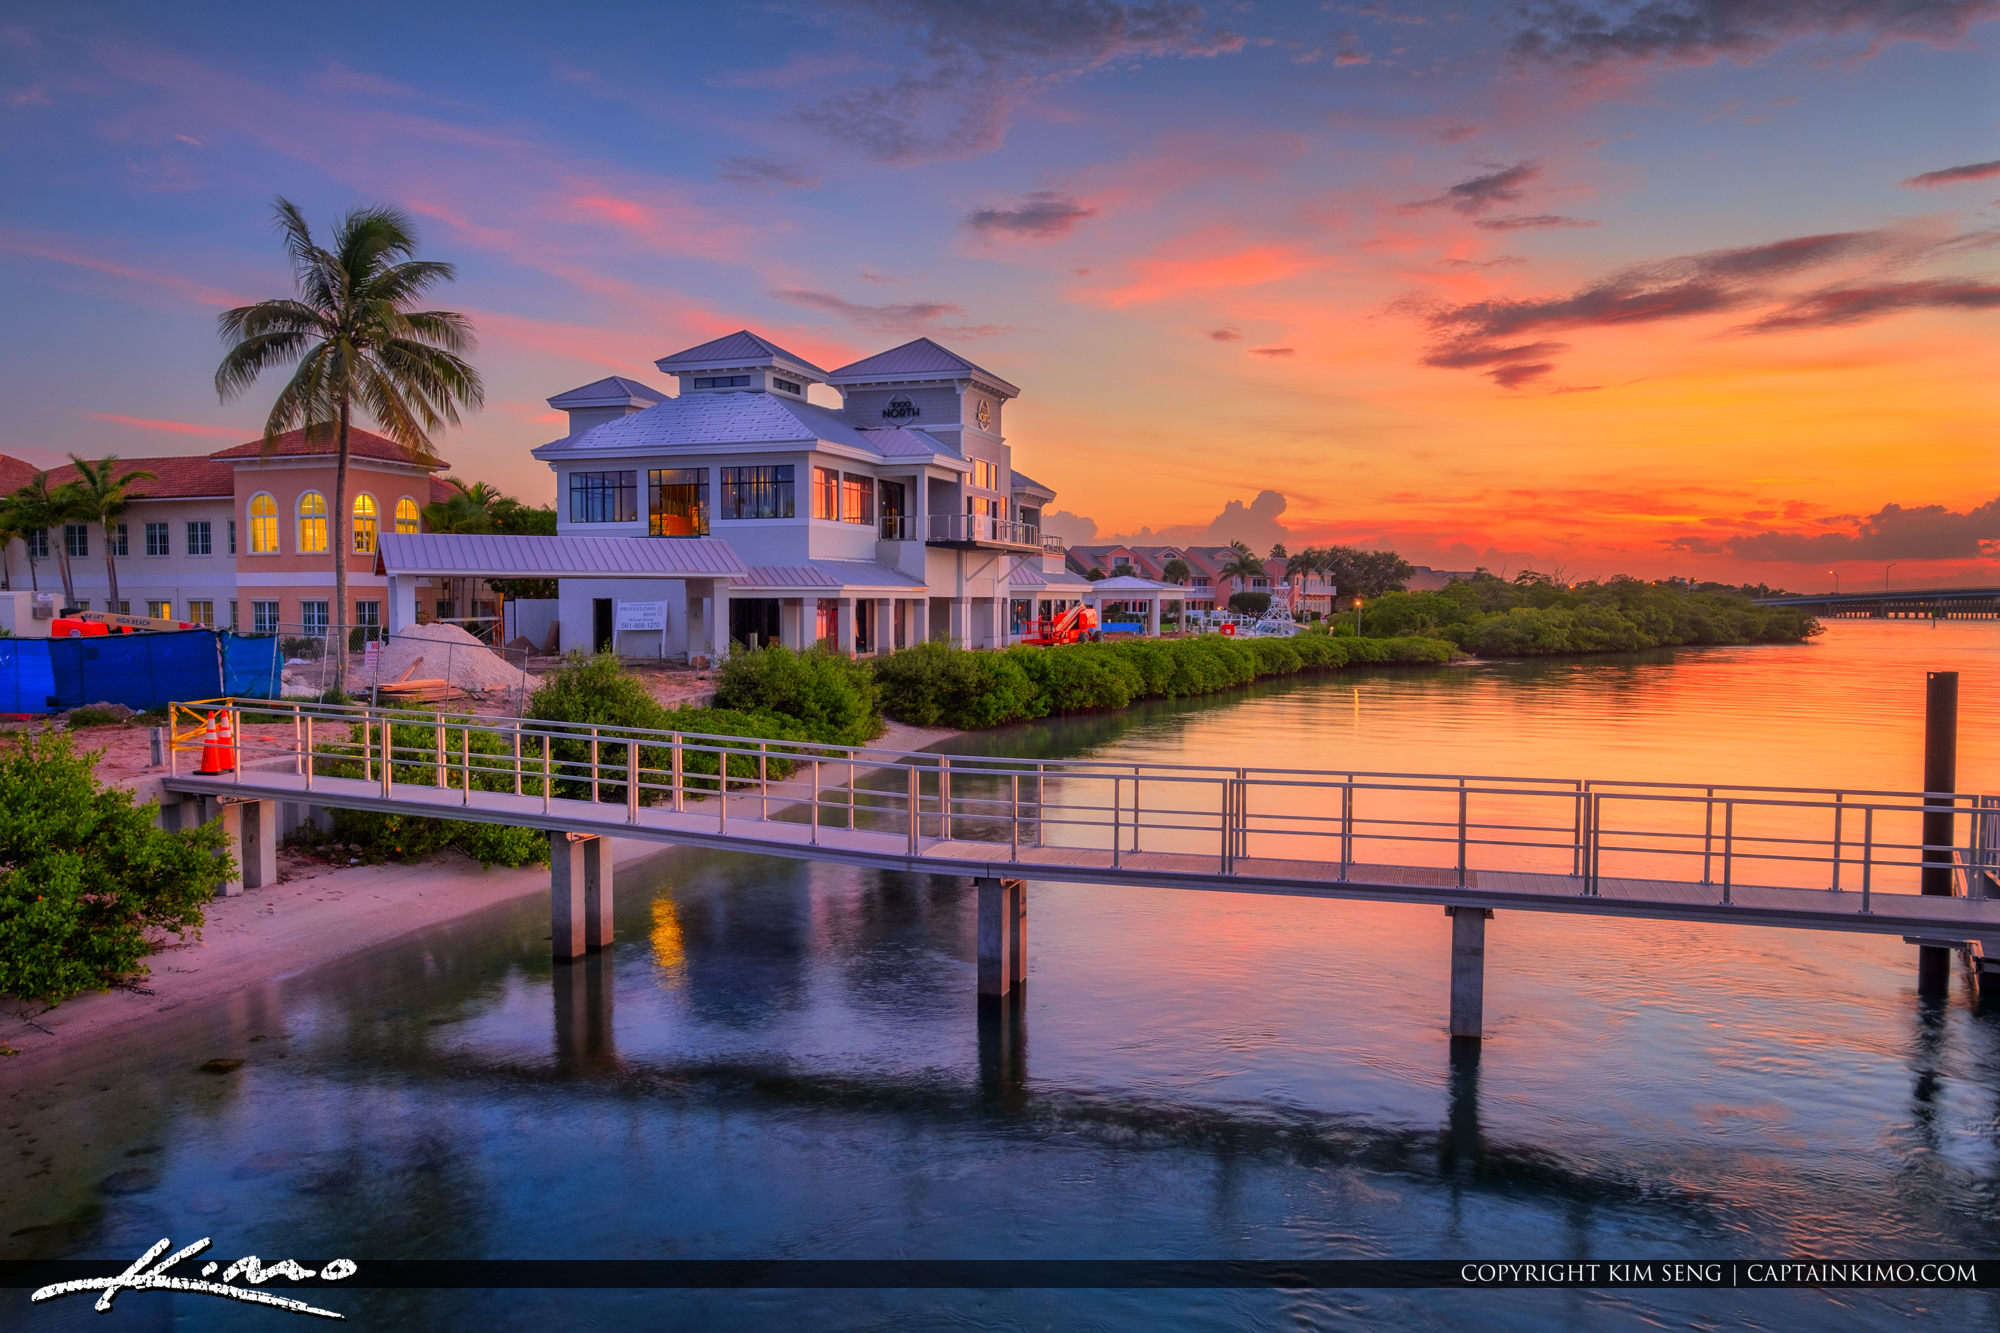 4. 1000 North - This elegant restaurant offers a selection of modern American regional dishes, as well as sweeping views of the Jupiter Inlet and the famous Jupiter Lighthouse.Our faves: French Dip Sandwich, Prime Rib, Steak TartarePrice: $$$$